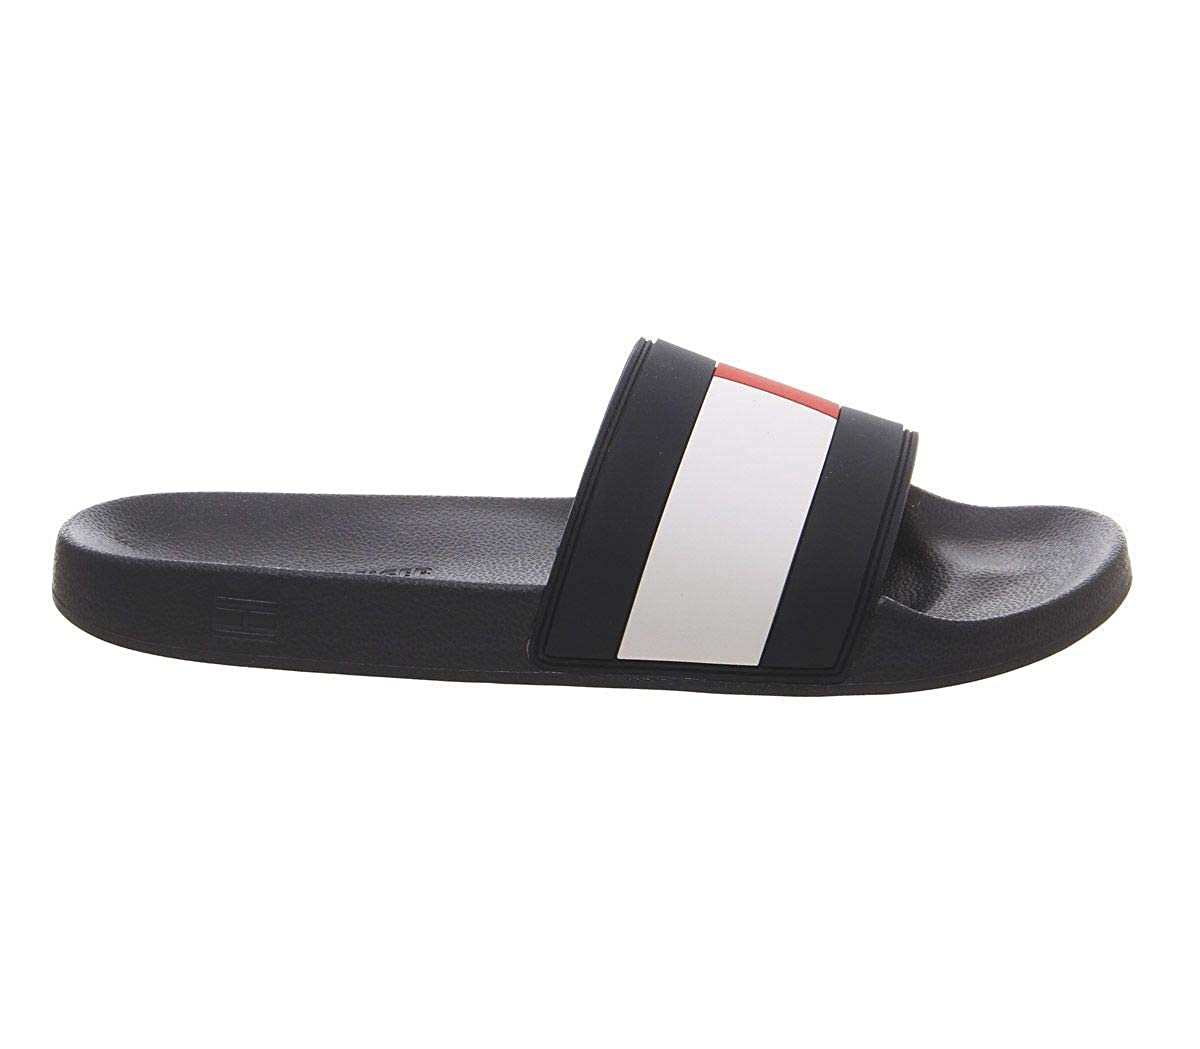 0ace01dc5c70 Tommy Hilfiger Men s s Flag Pool Slide Beach   Pool Shoes  Amazon.co.uk   Shoes   Bags